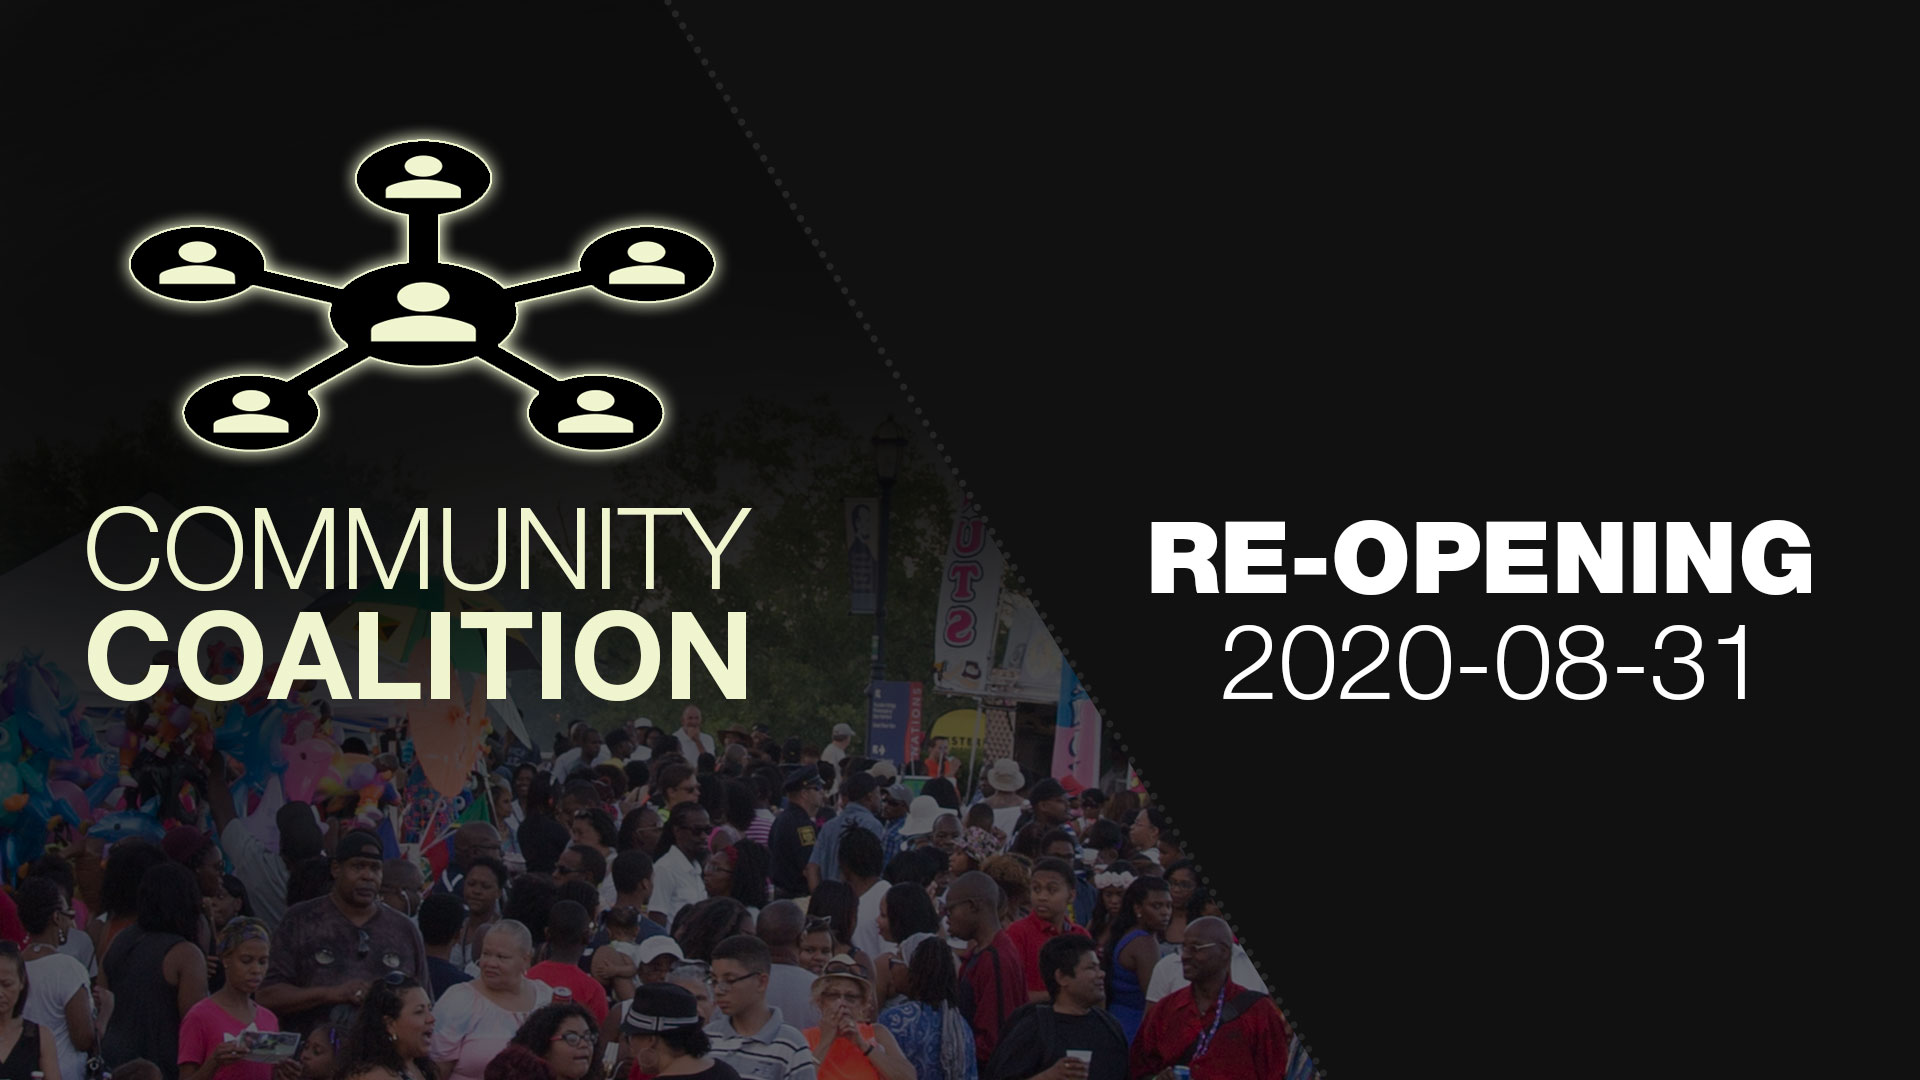 Re-Opening during Covid19 – Coalition Virtual Video Series